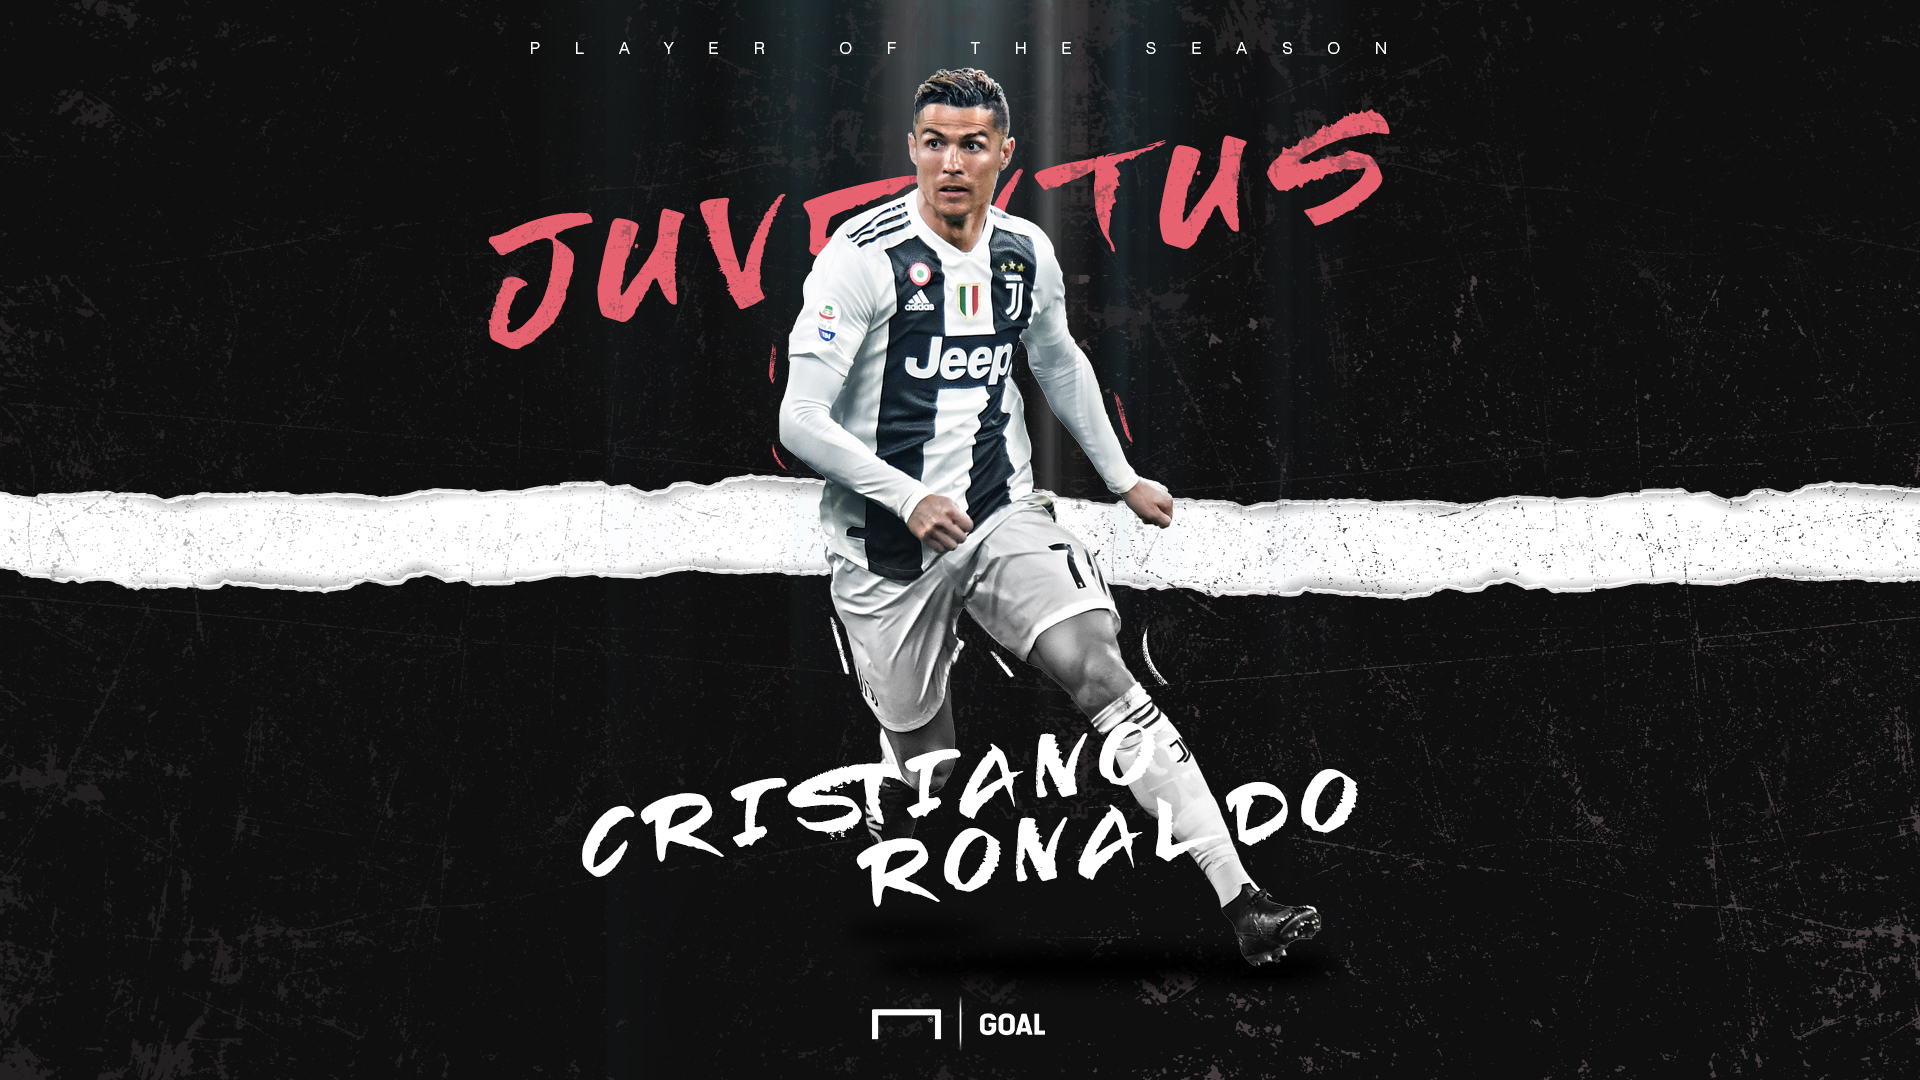 Cristiano Ronaldo Juventus Player of the Season